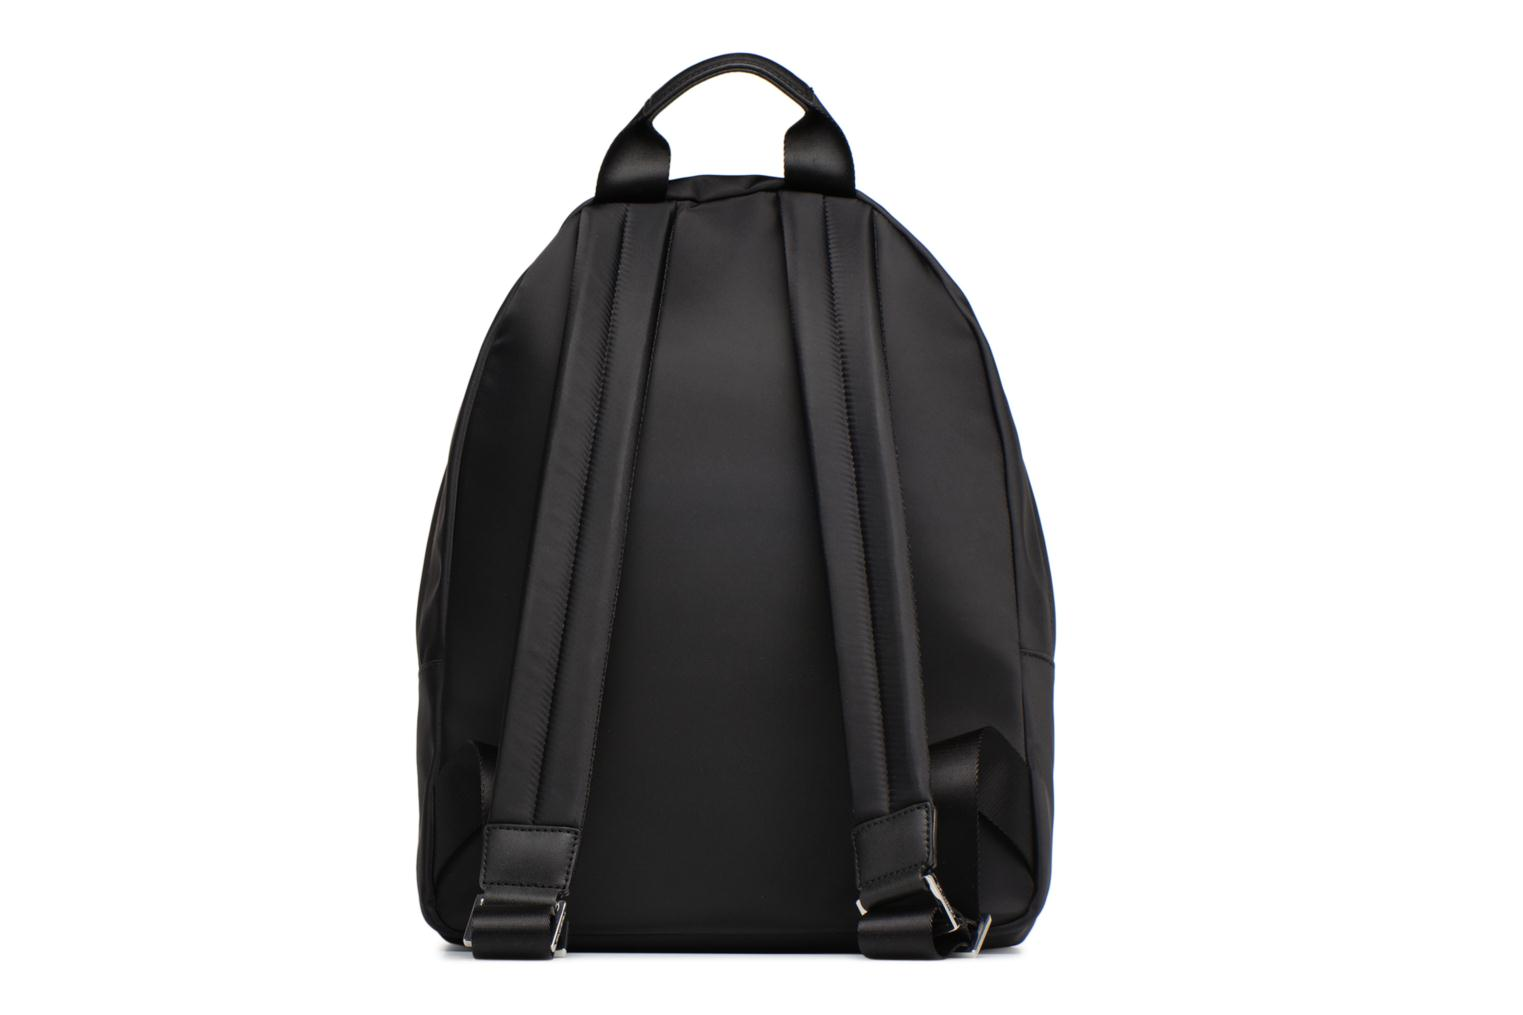 KARL Black K NYLON BACKPACK IKONIK LAGERFELD rqBXw6r